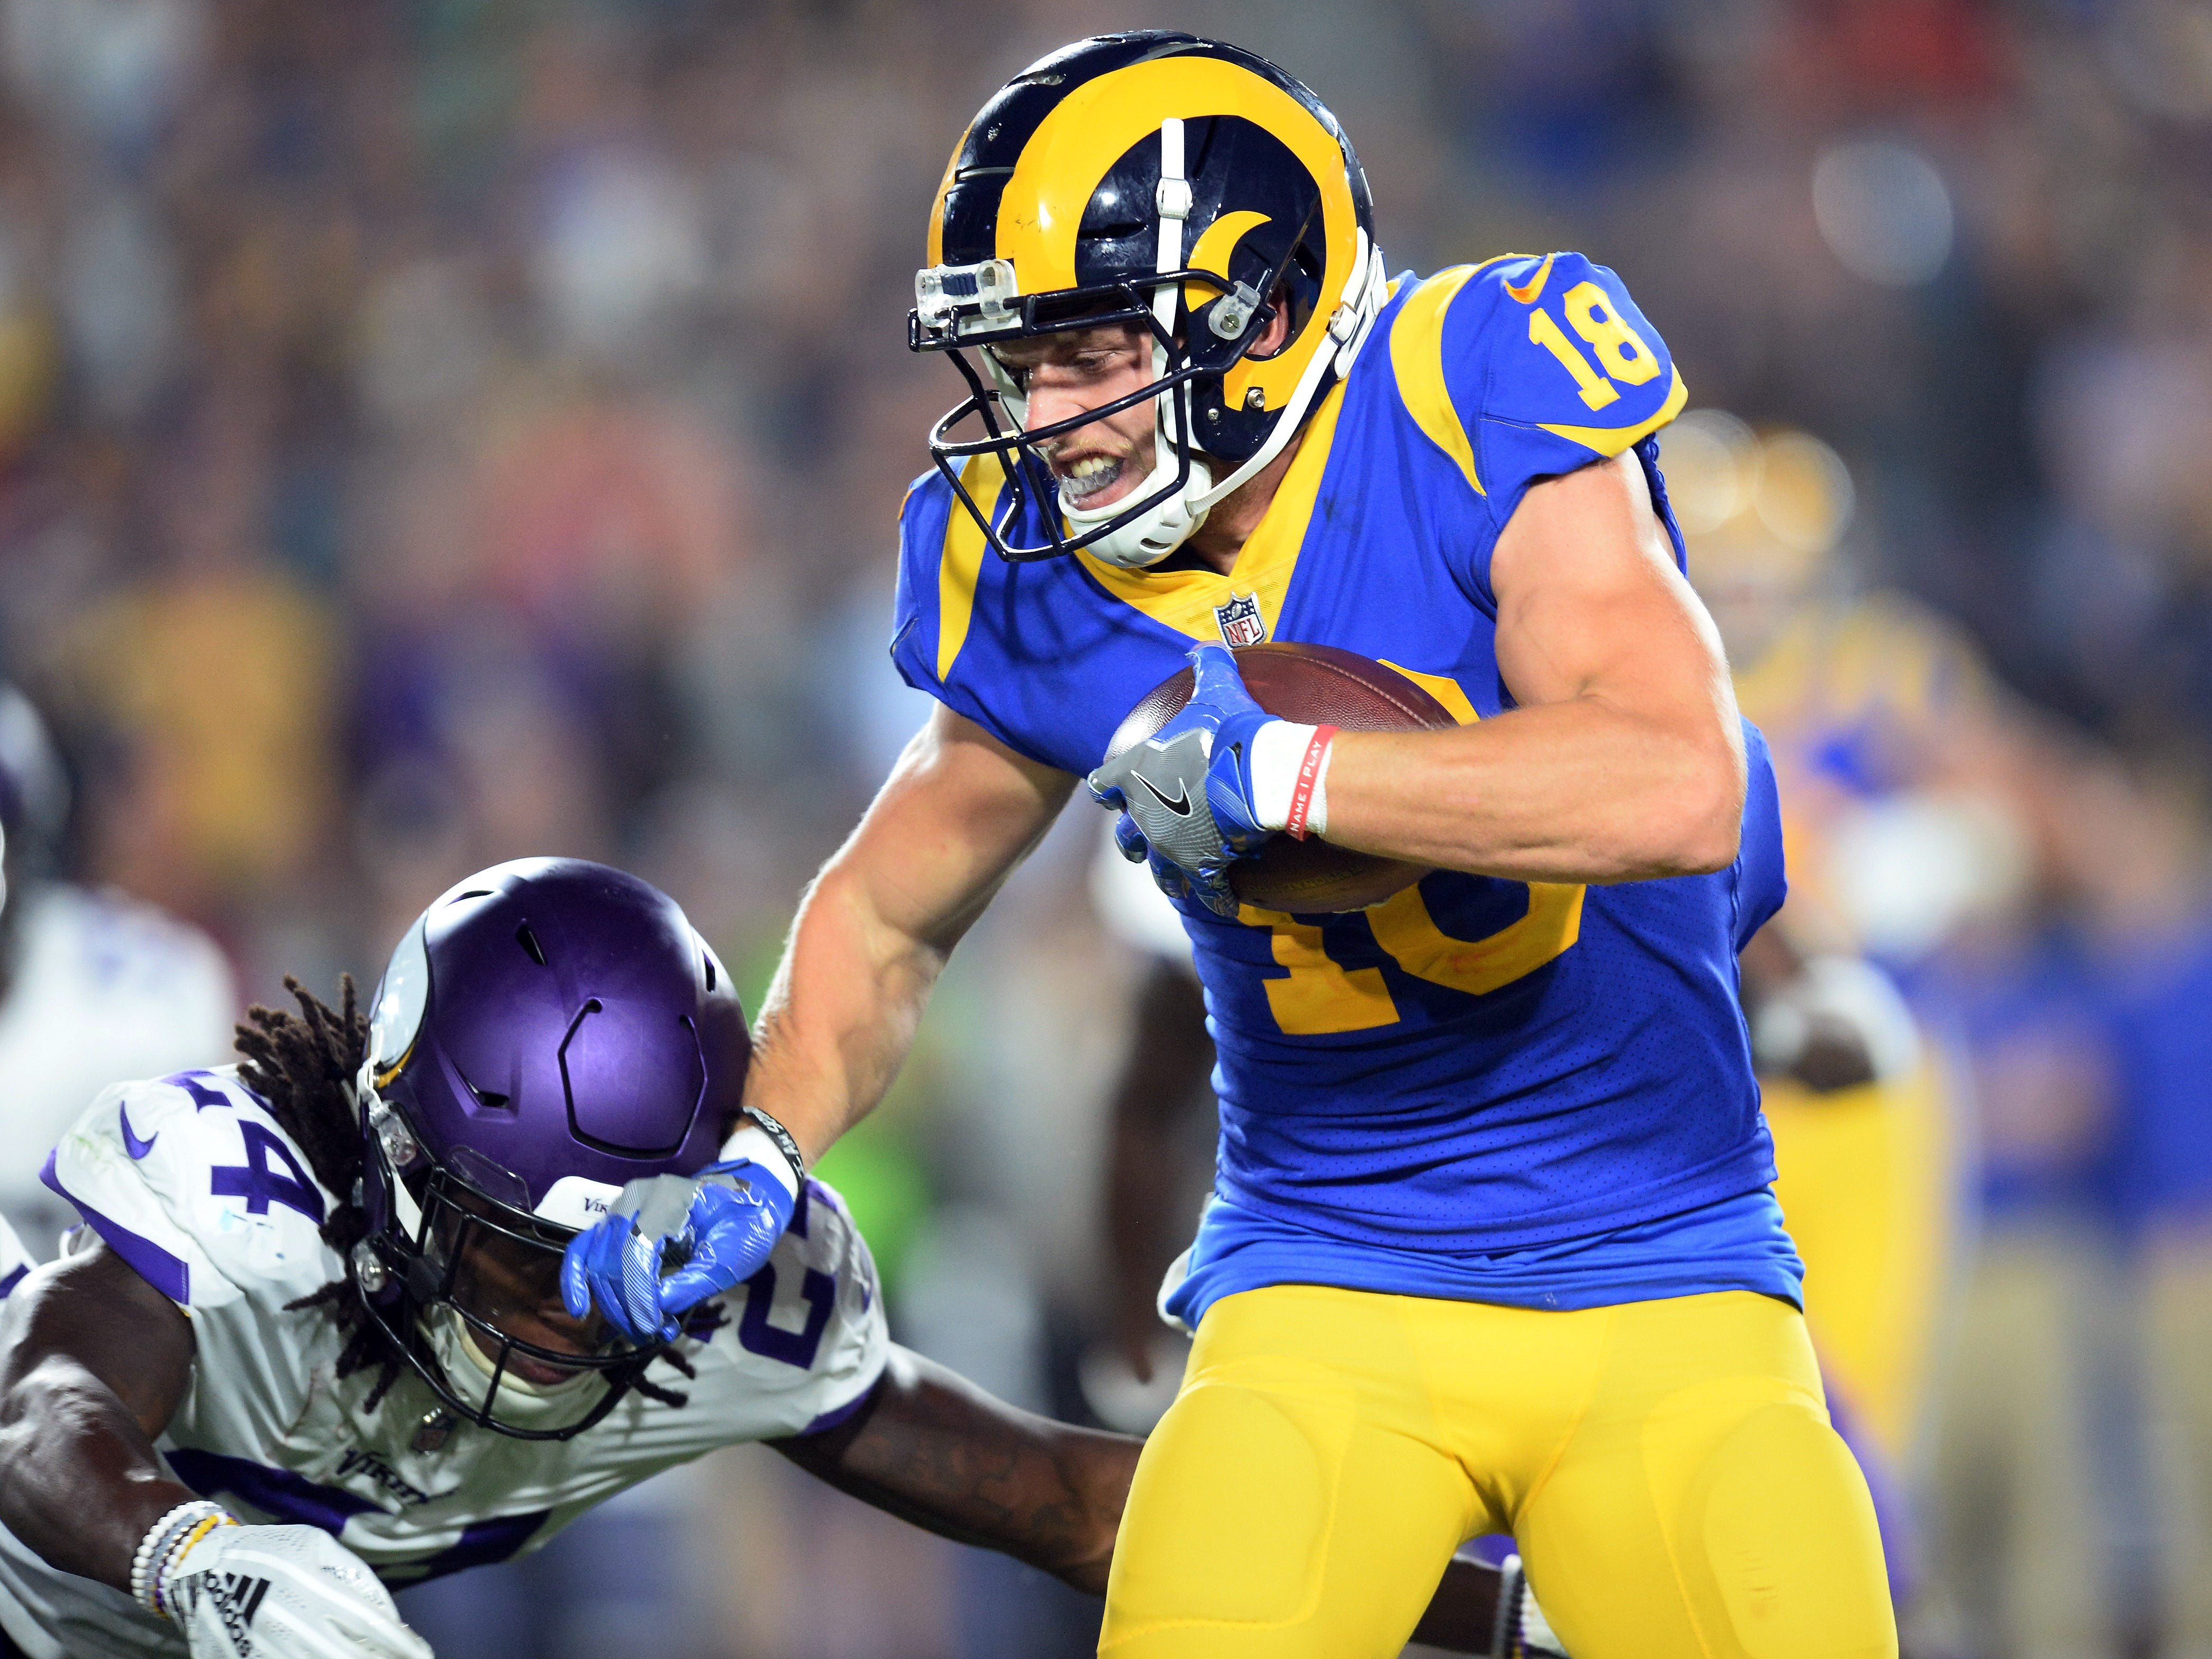 Los Angeles Rams wide receiver Cooper Kupp runs the ball against the Vikings defense.